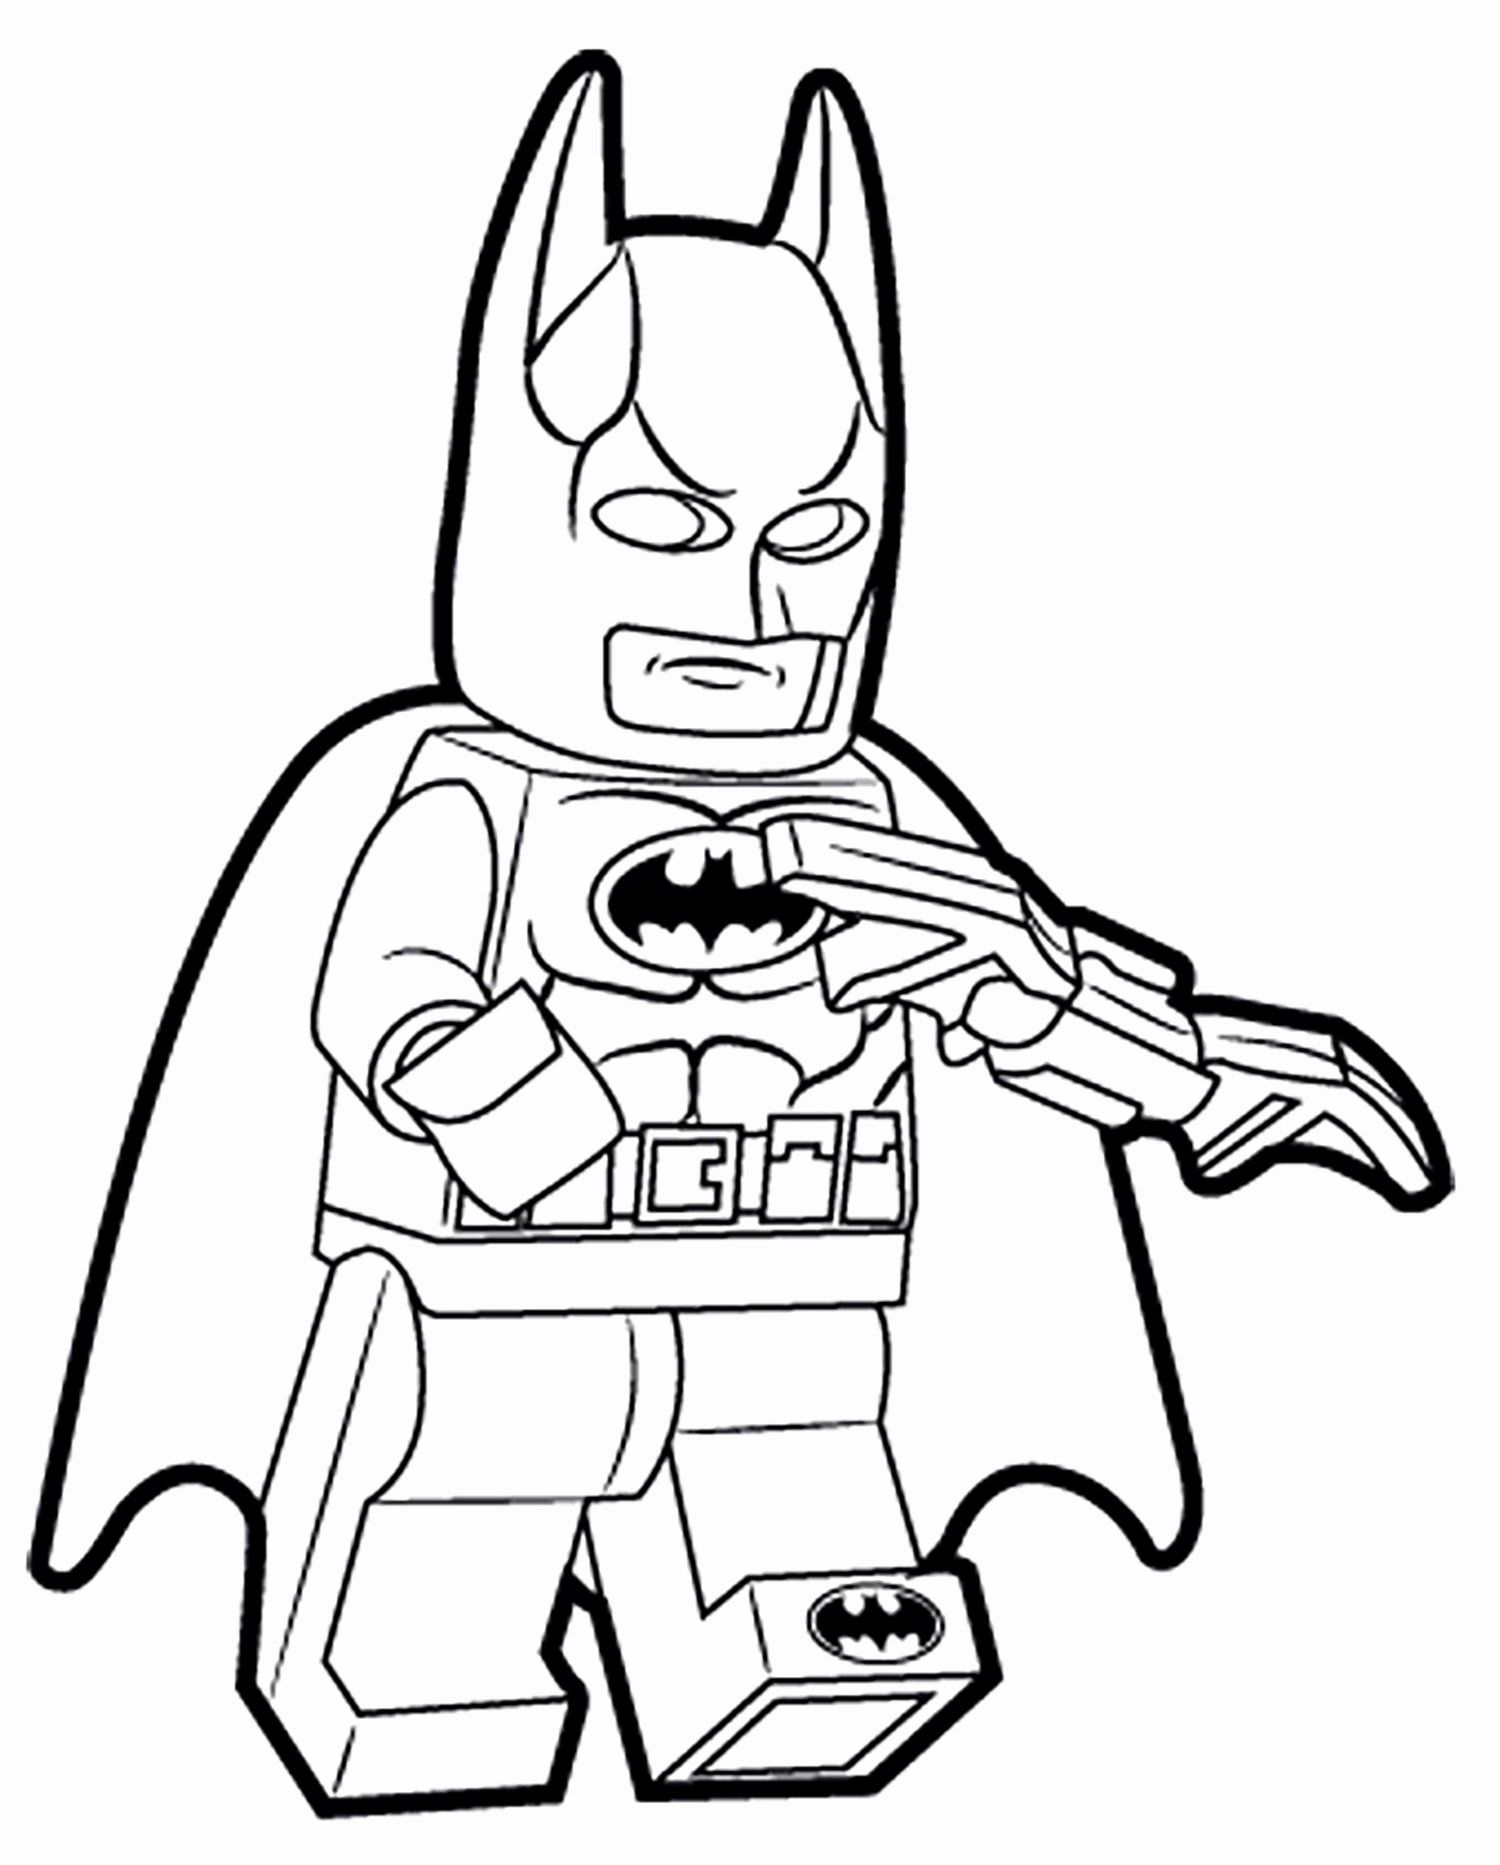 Lego Batman Coloring Book Unique Coloring Pages Lego